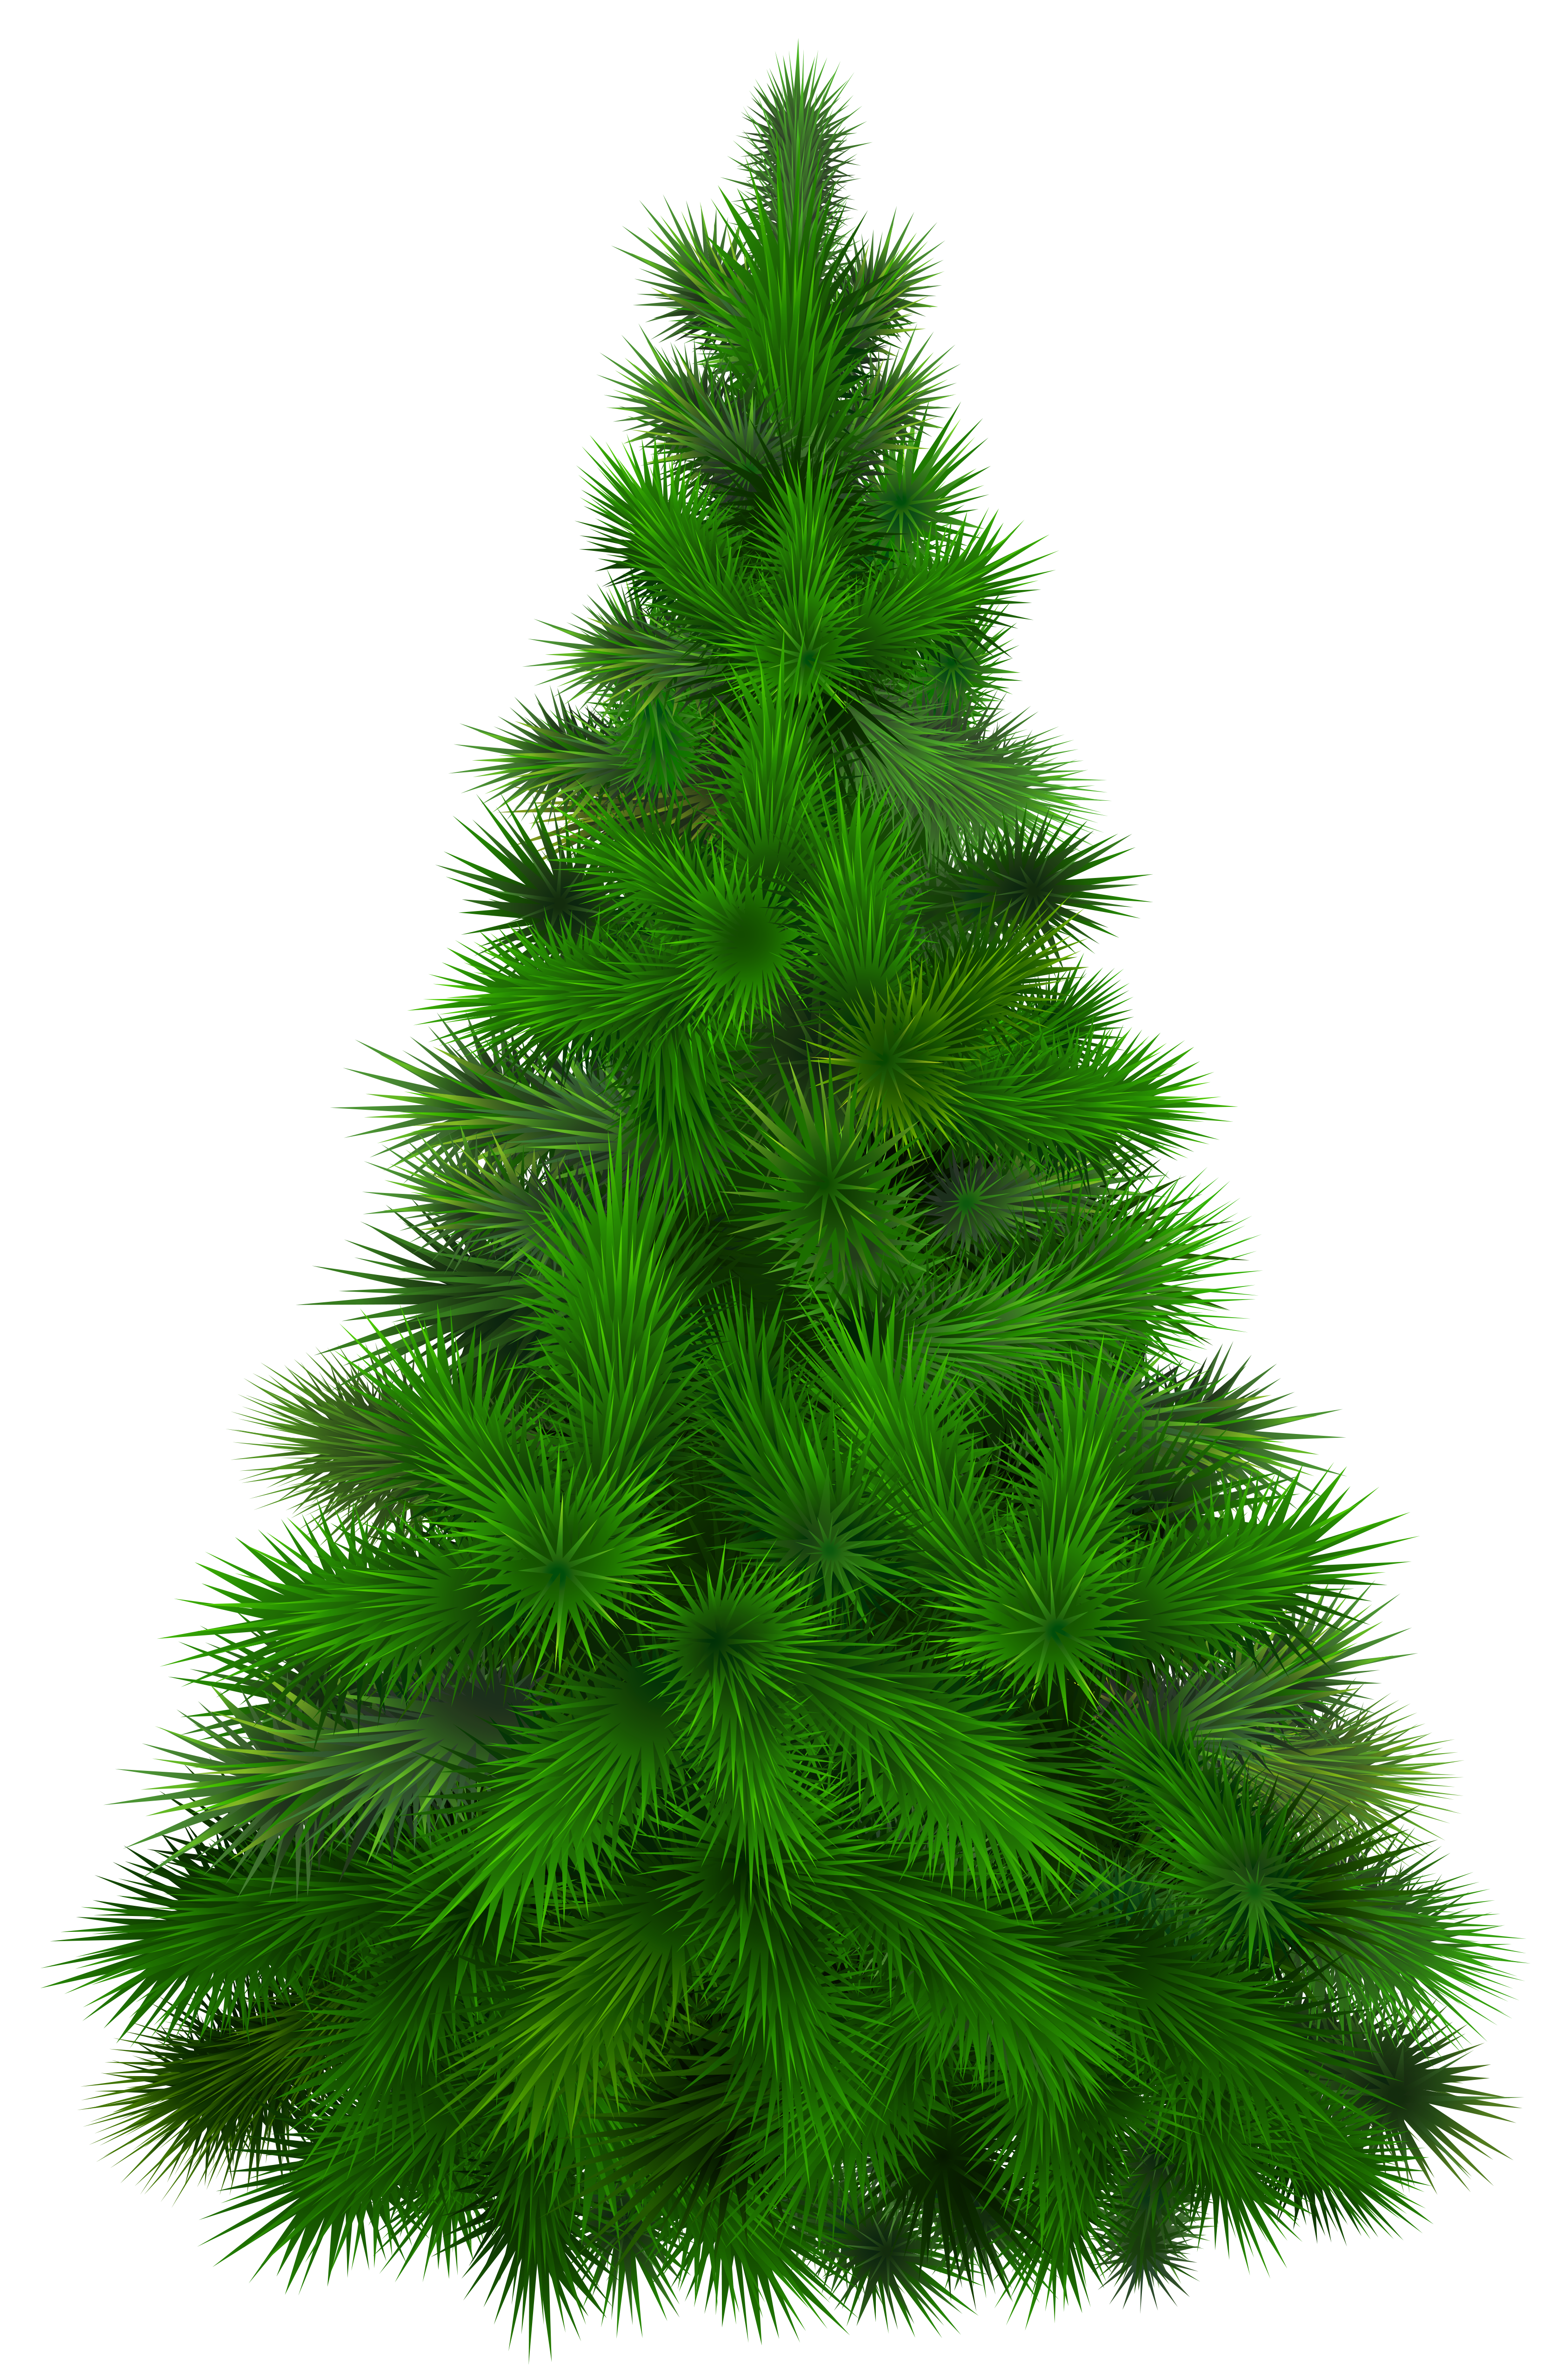 pine tree clipart cypress tree pencil and in color pine [ 3371 x 5098 Pixel ]